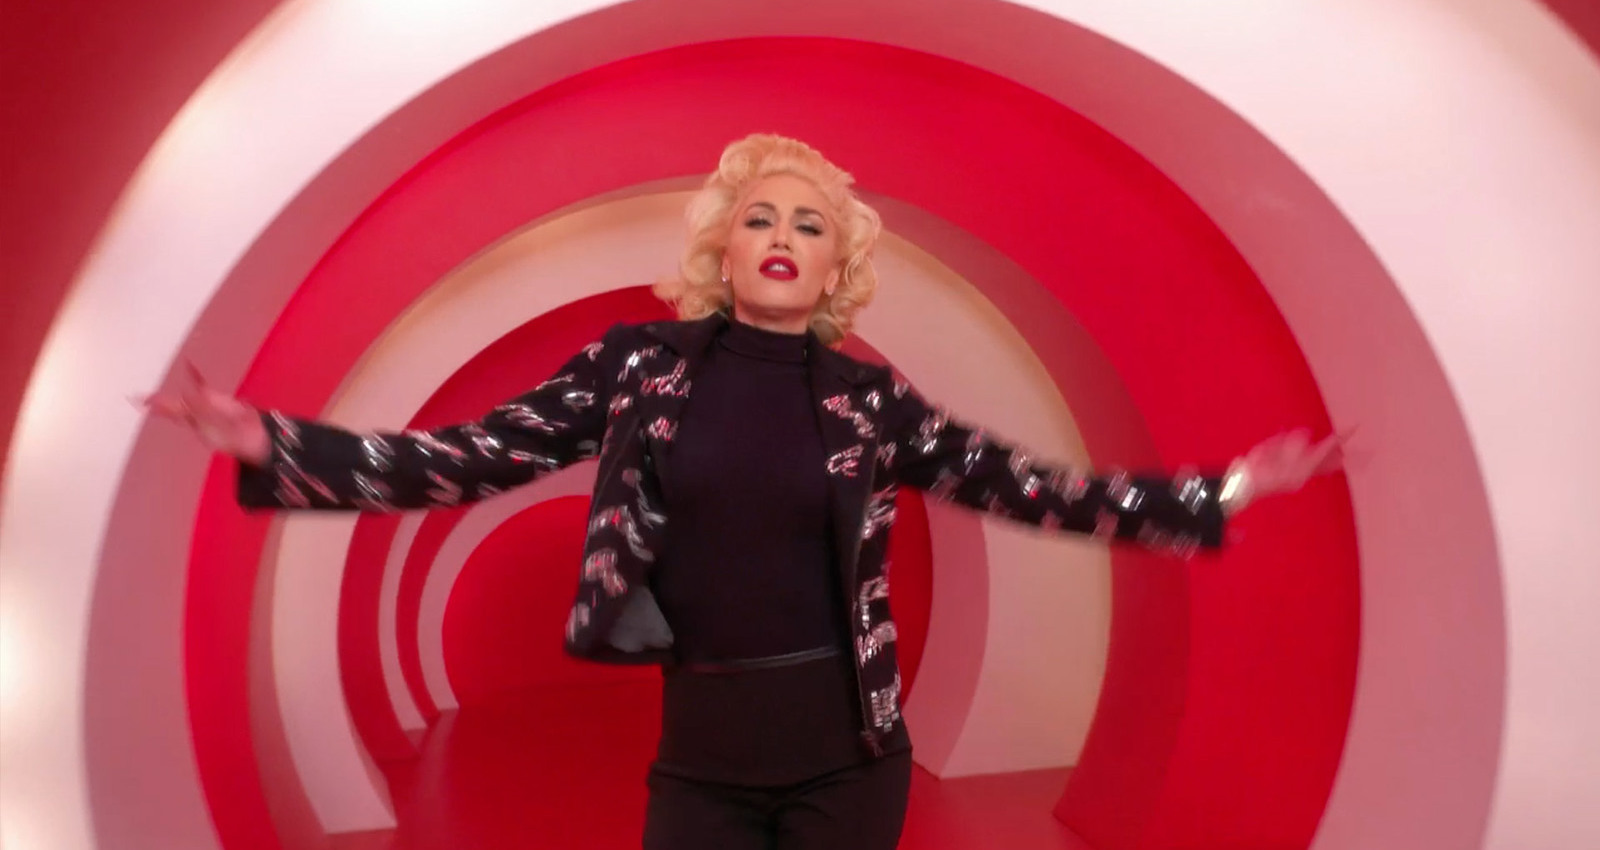 Target Creates First Ever Live Music Video with Gwen Stefani